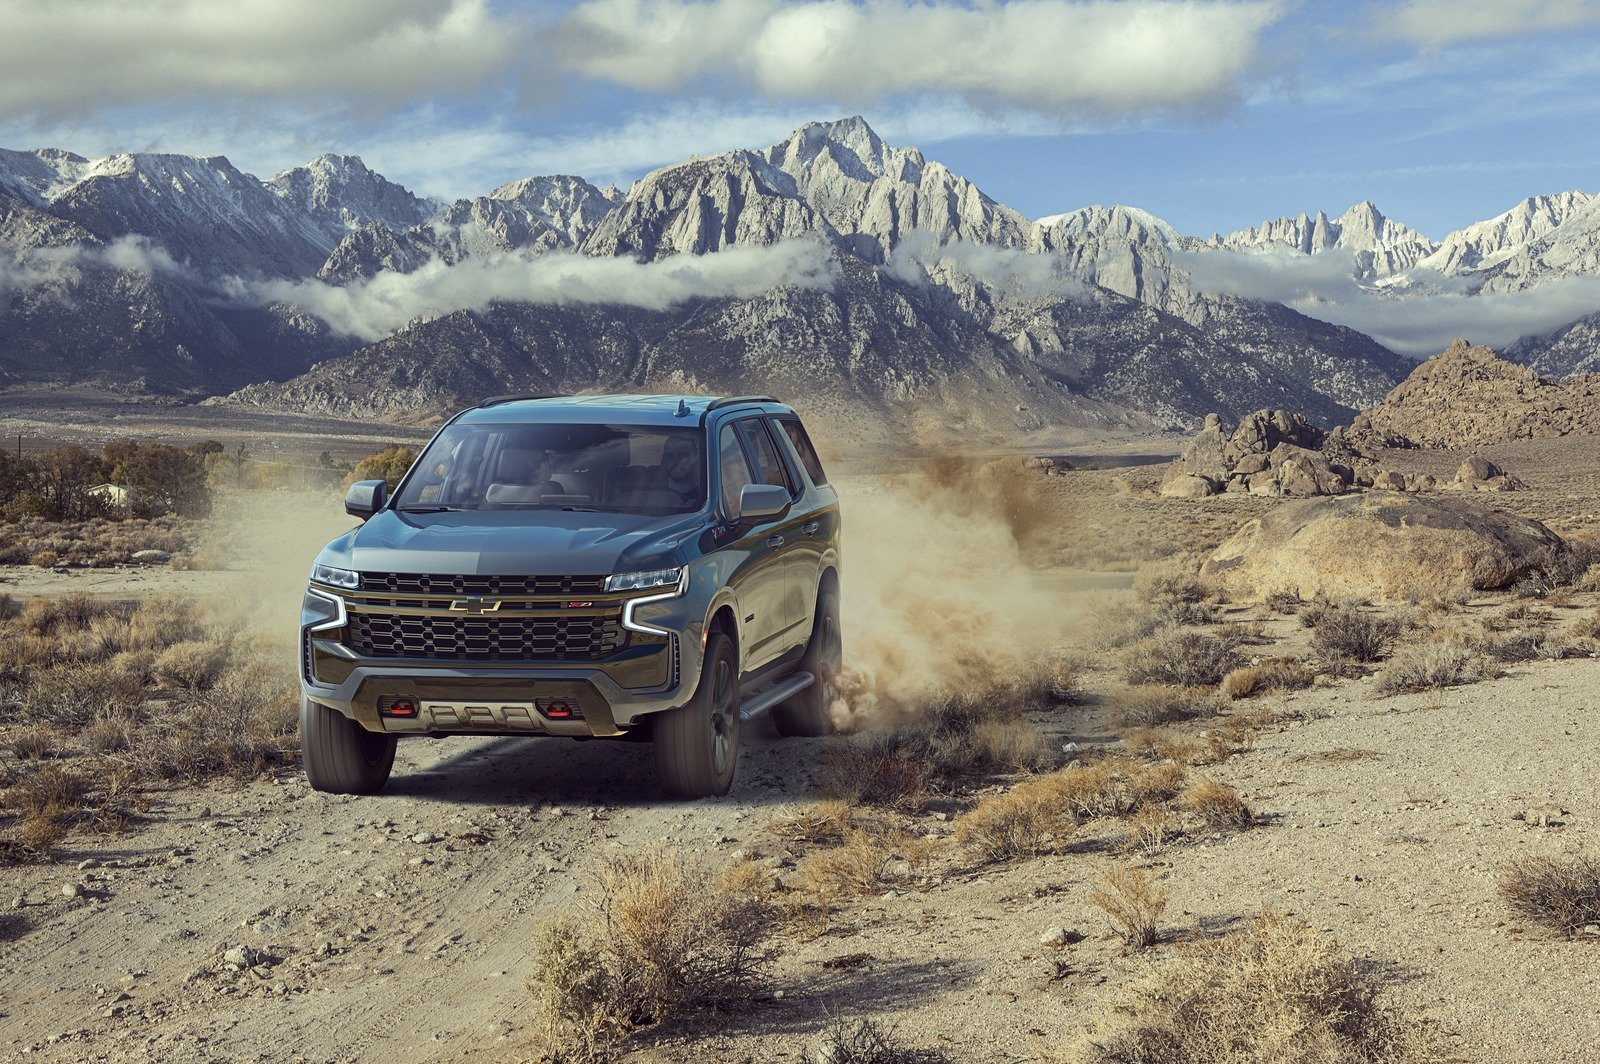 2021 Chevy Tahoe Can A 2021 Chevy Spark Be Flat Towed